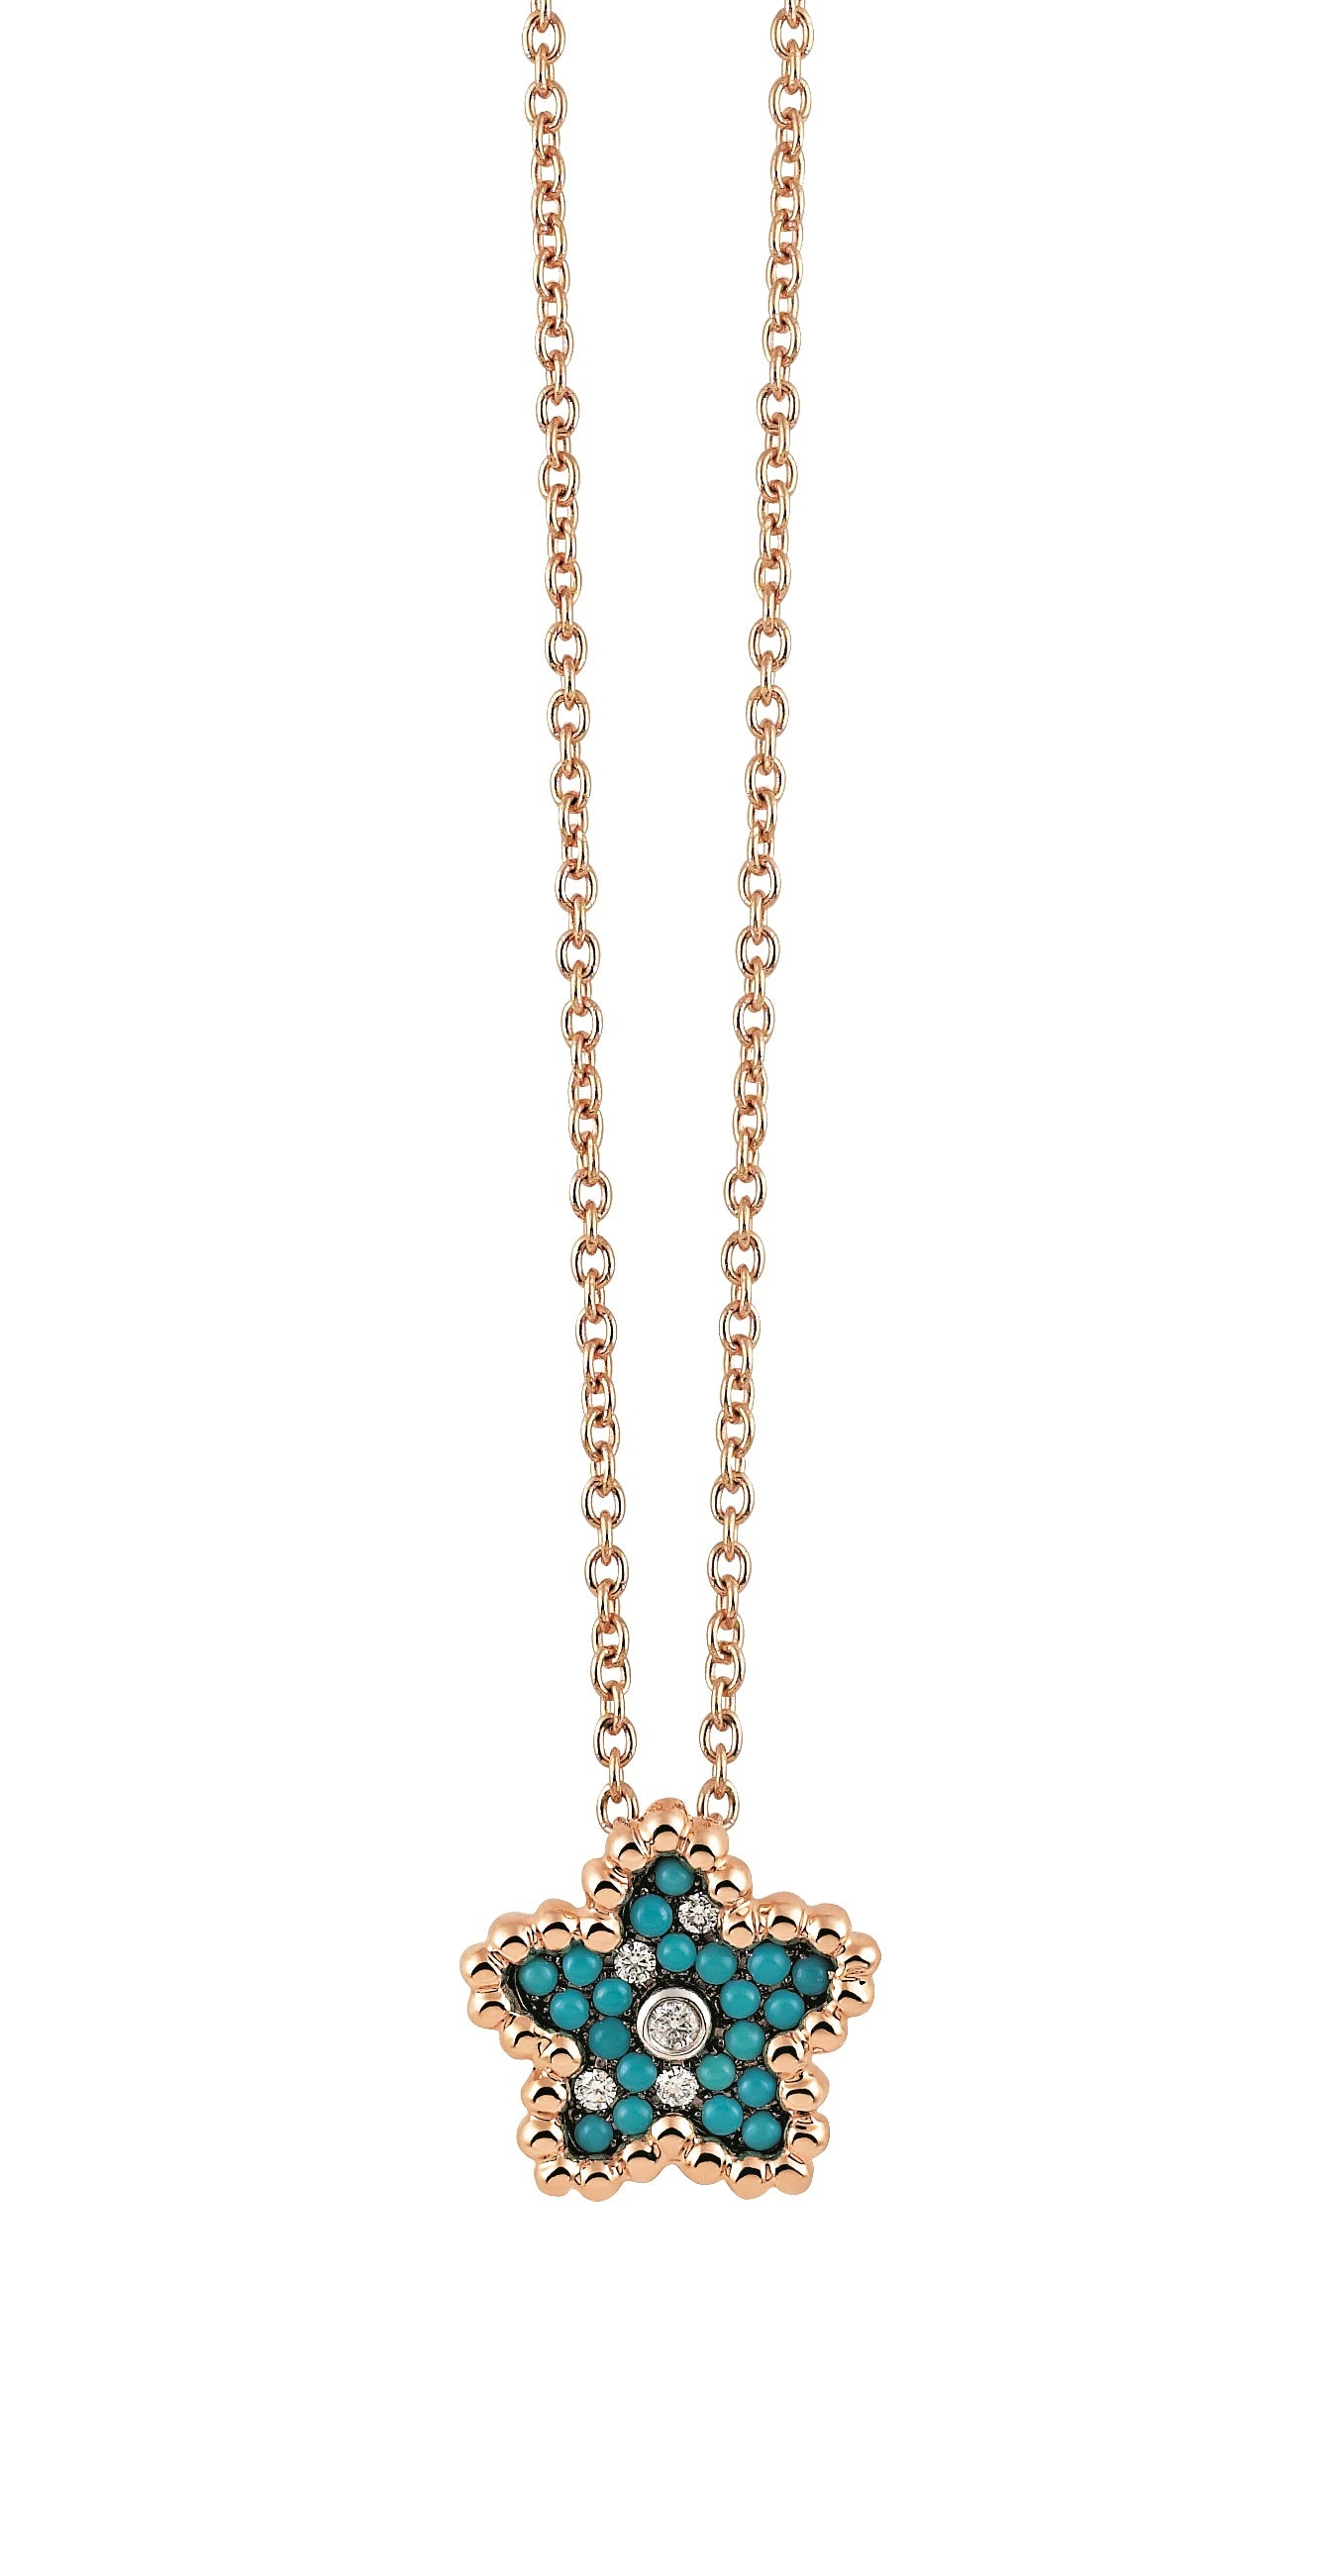 Palladio Pendant in 18k Rose Gold with Diamonds and Turquoise - Orsini Jewellers NZ